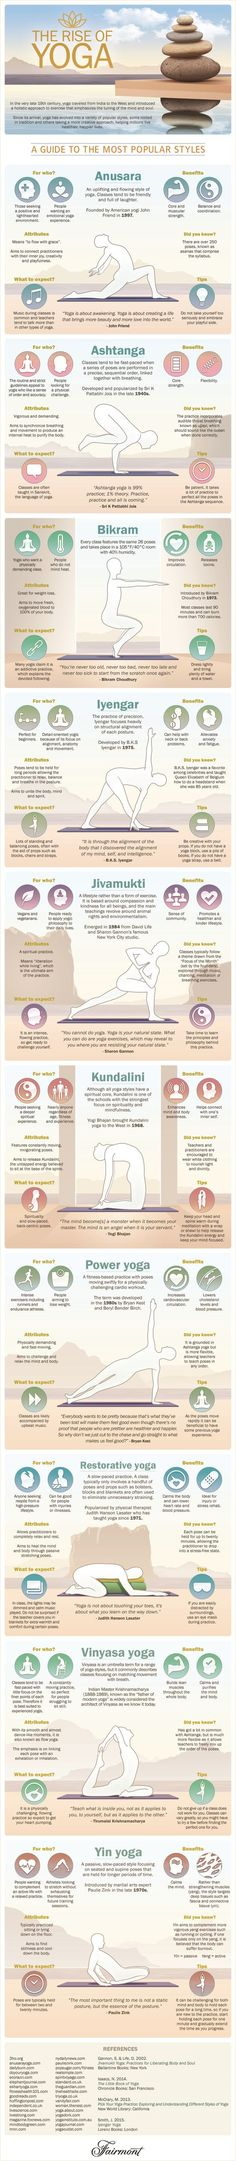 Bikram, Ashtanga, power yoga and Anusara explained.